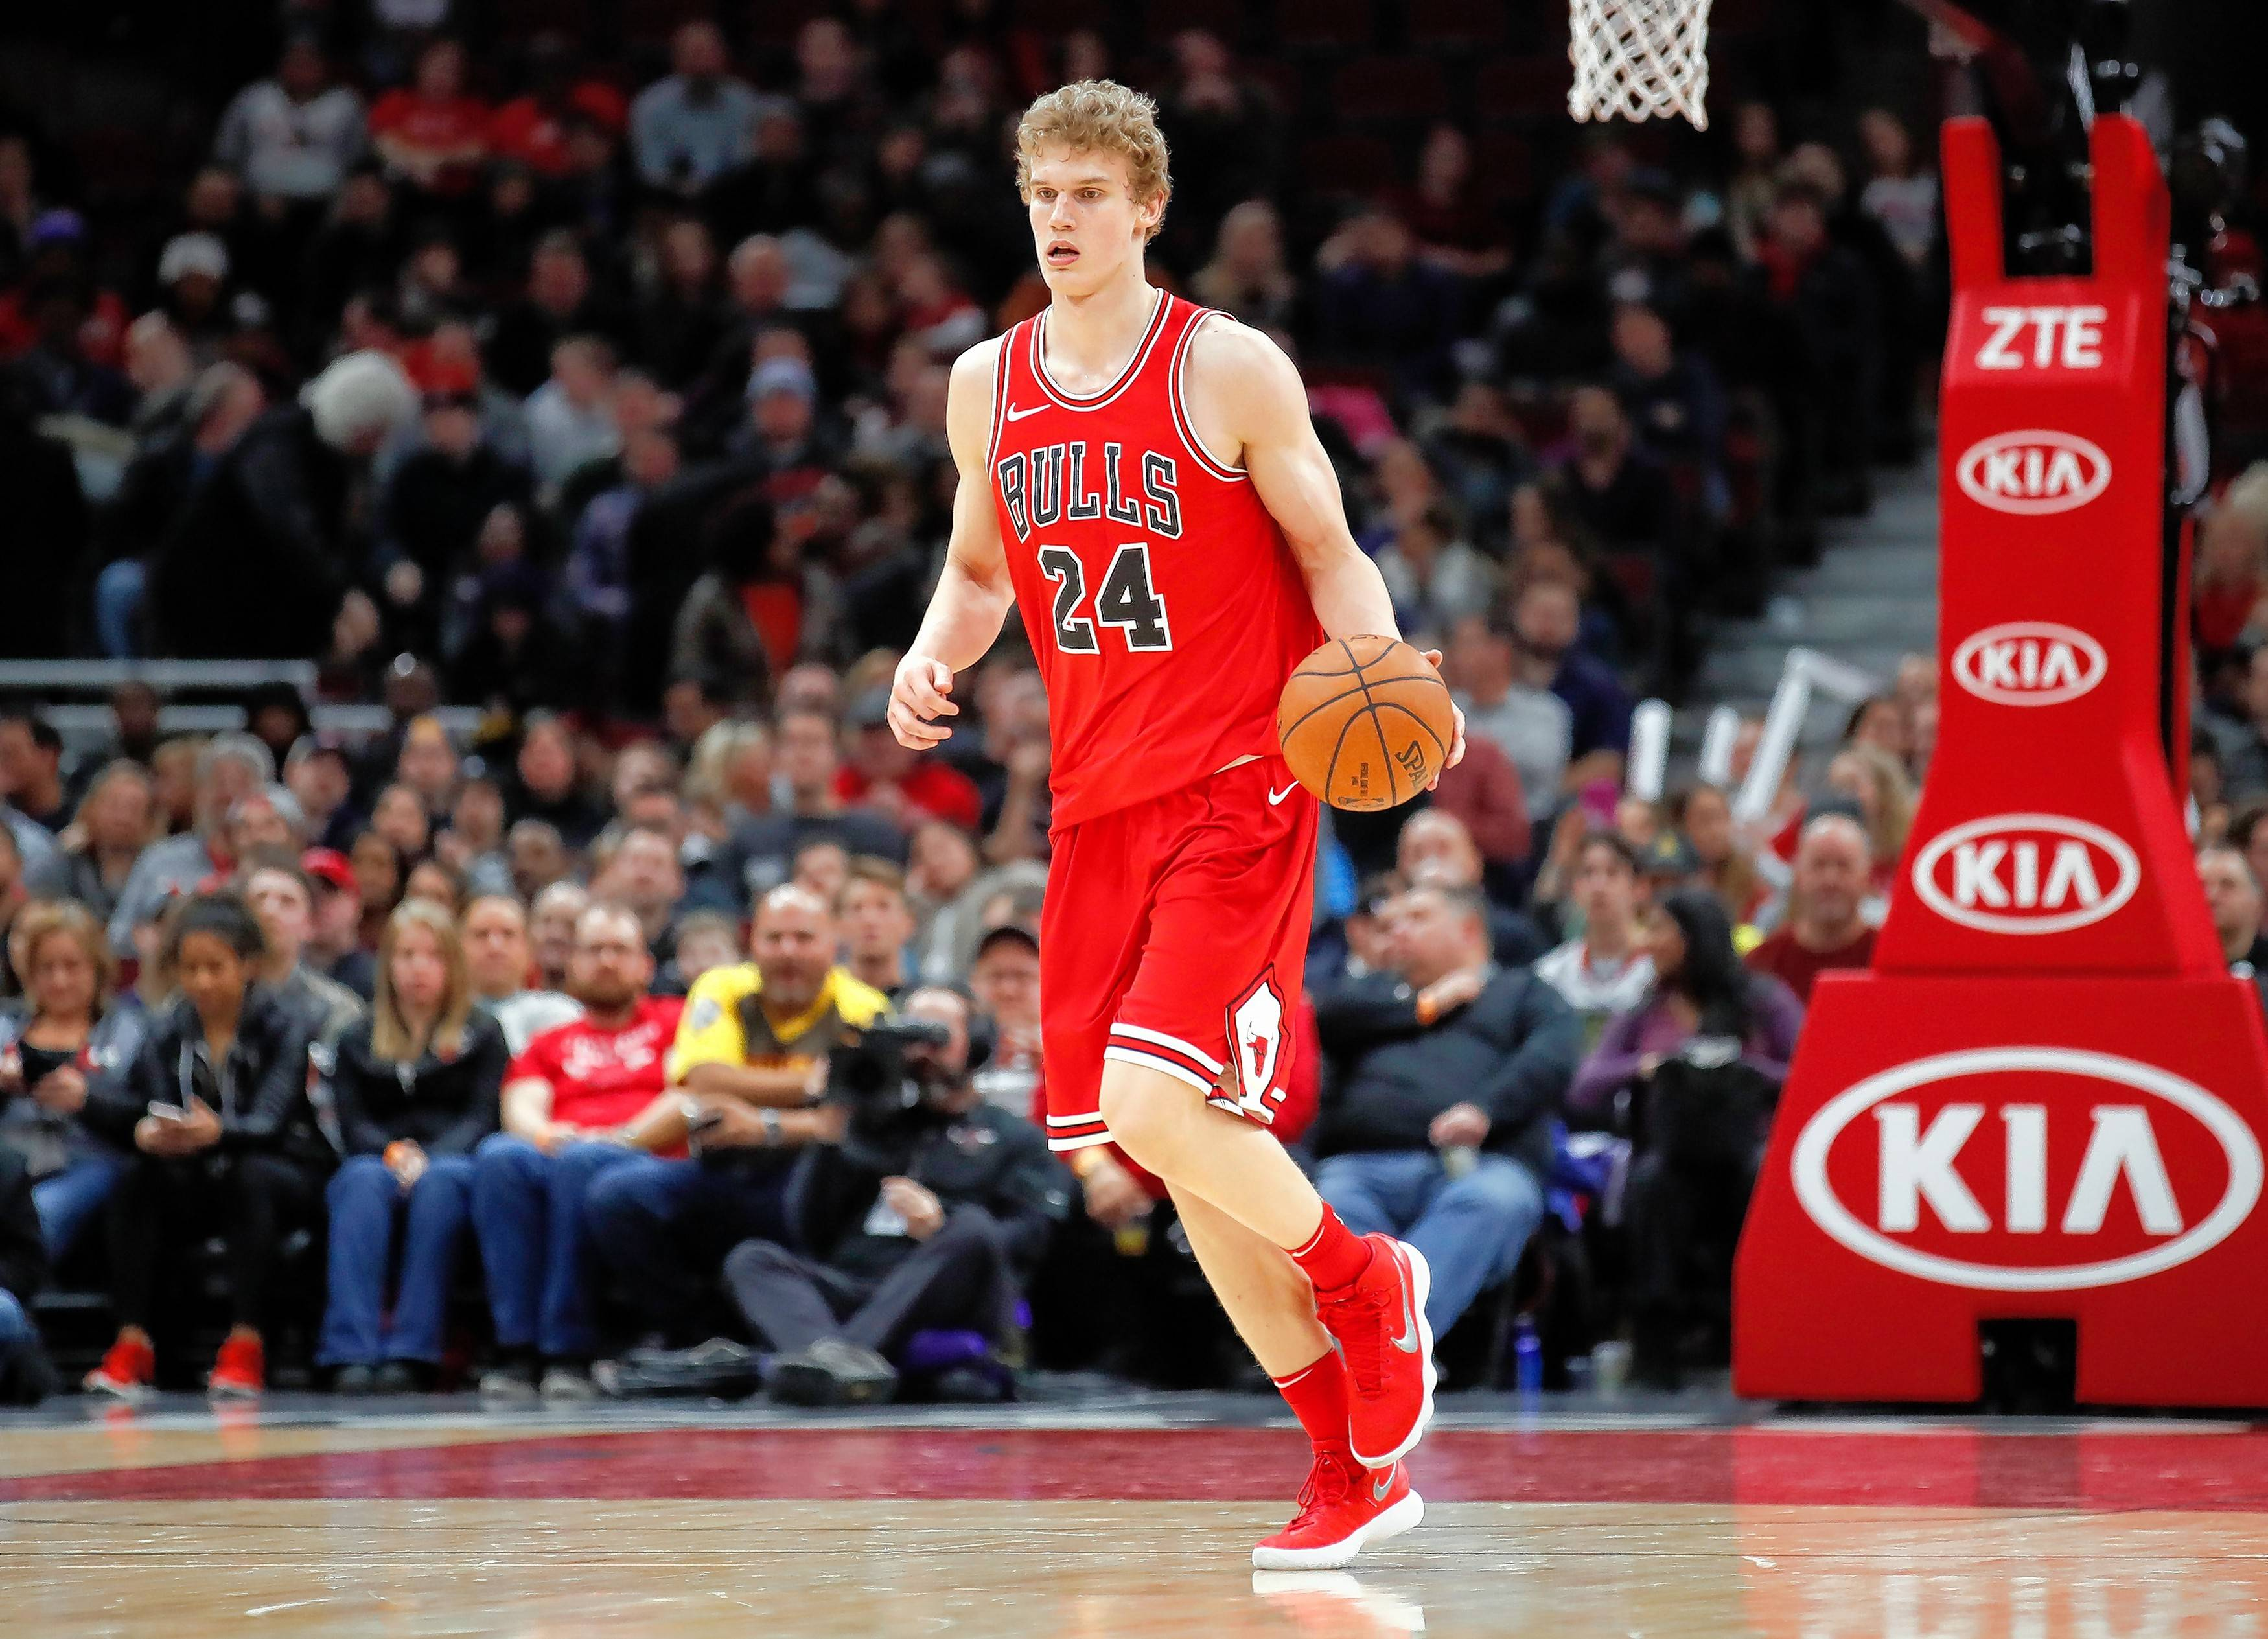 With rookie forward Lauri Markkanen, the Chicago Bulls have much more than a 7-footer who pop long-range shots.